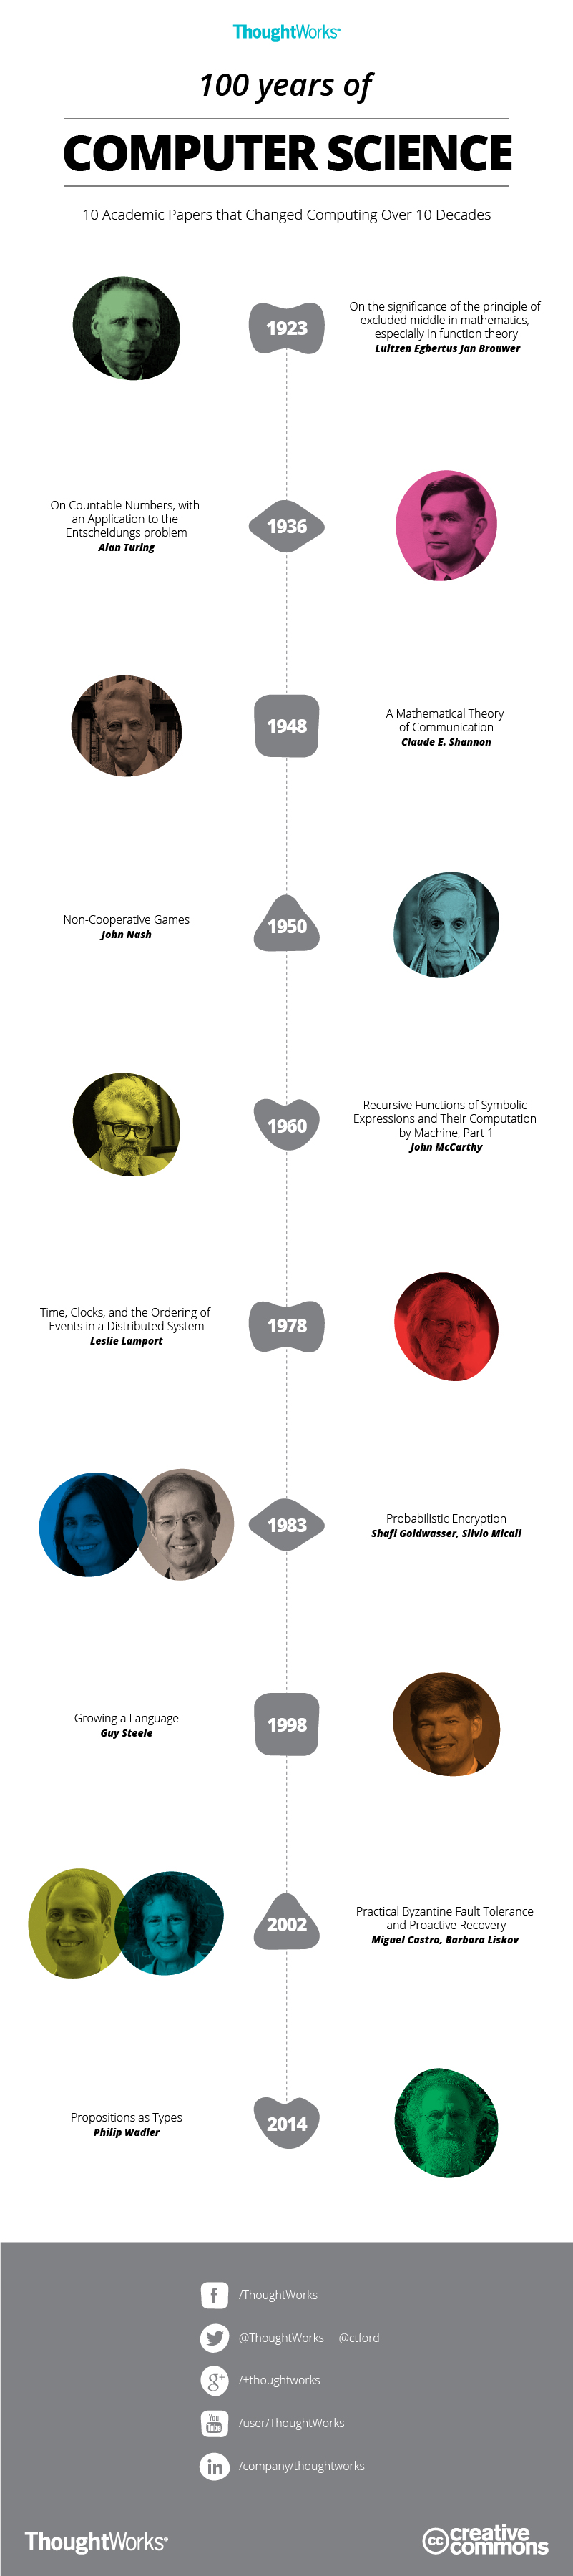 100 Years of Computer Science Infographic